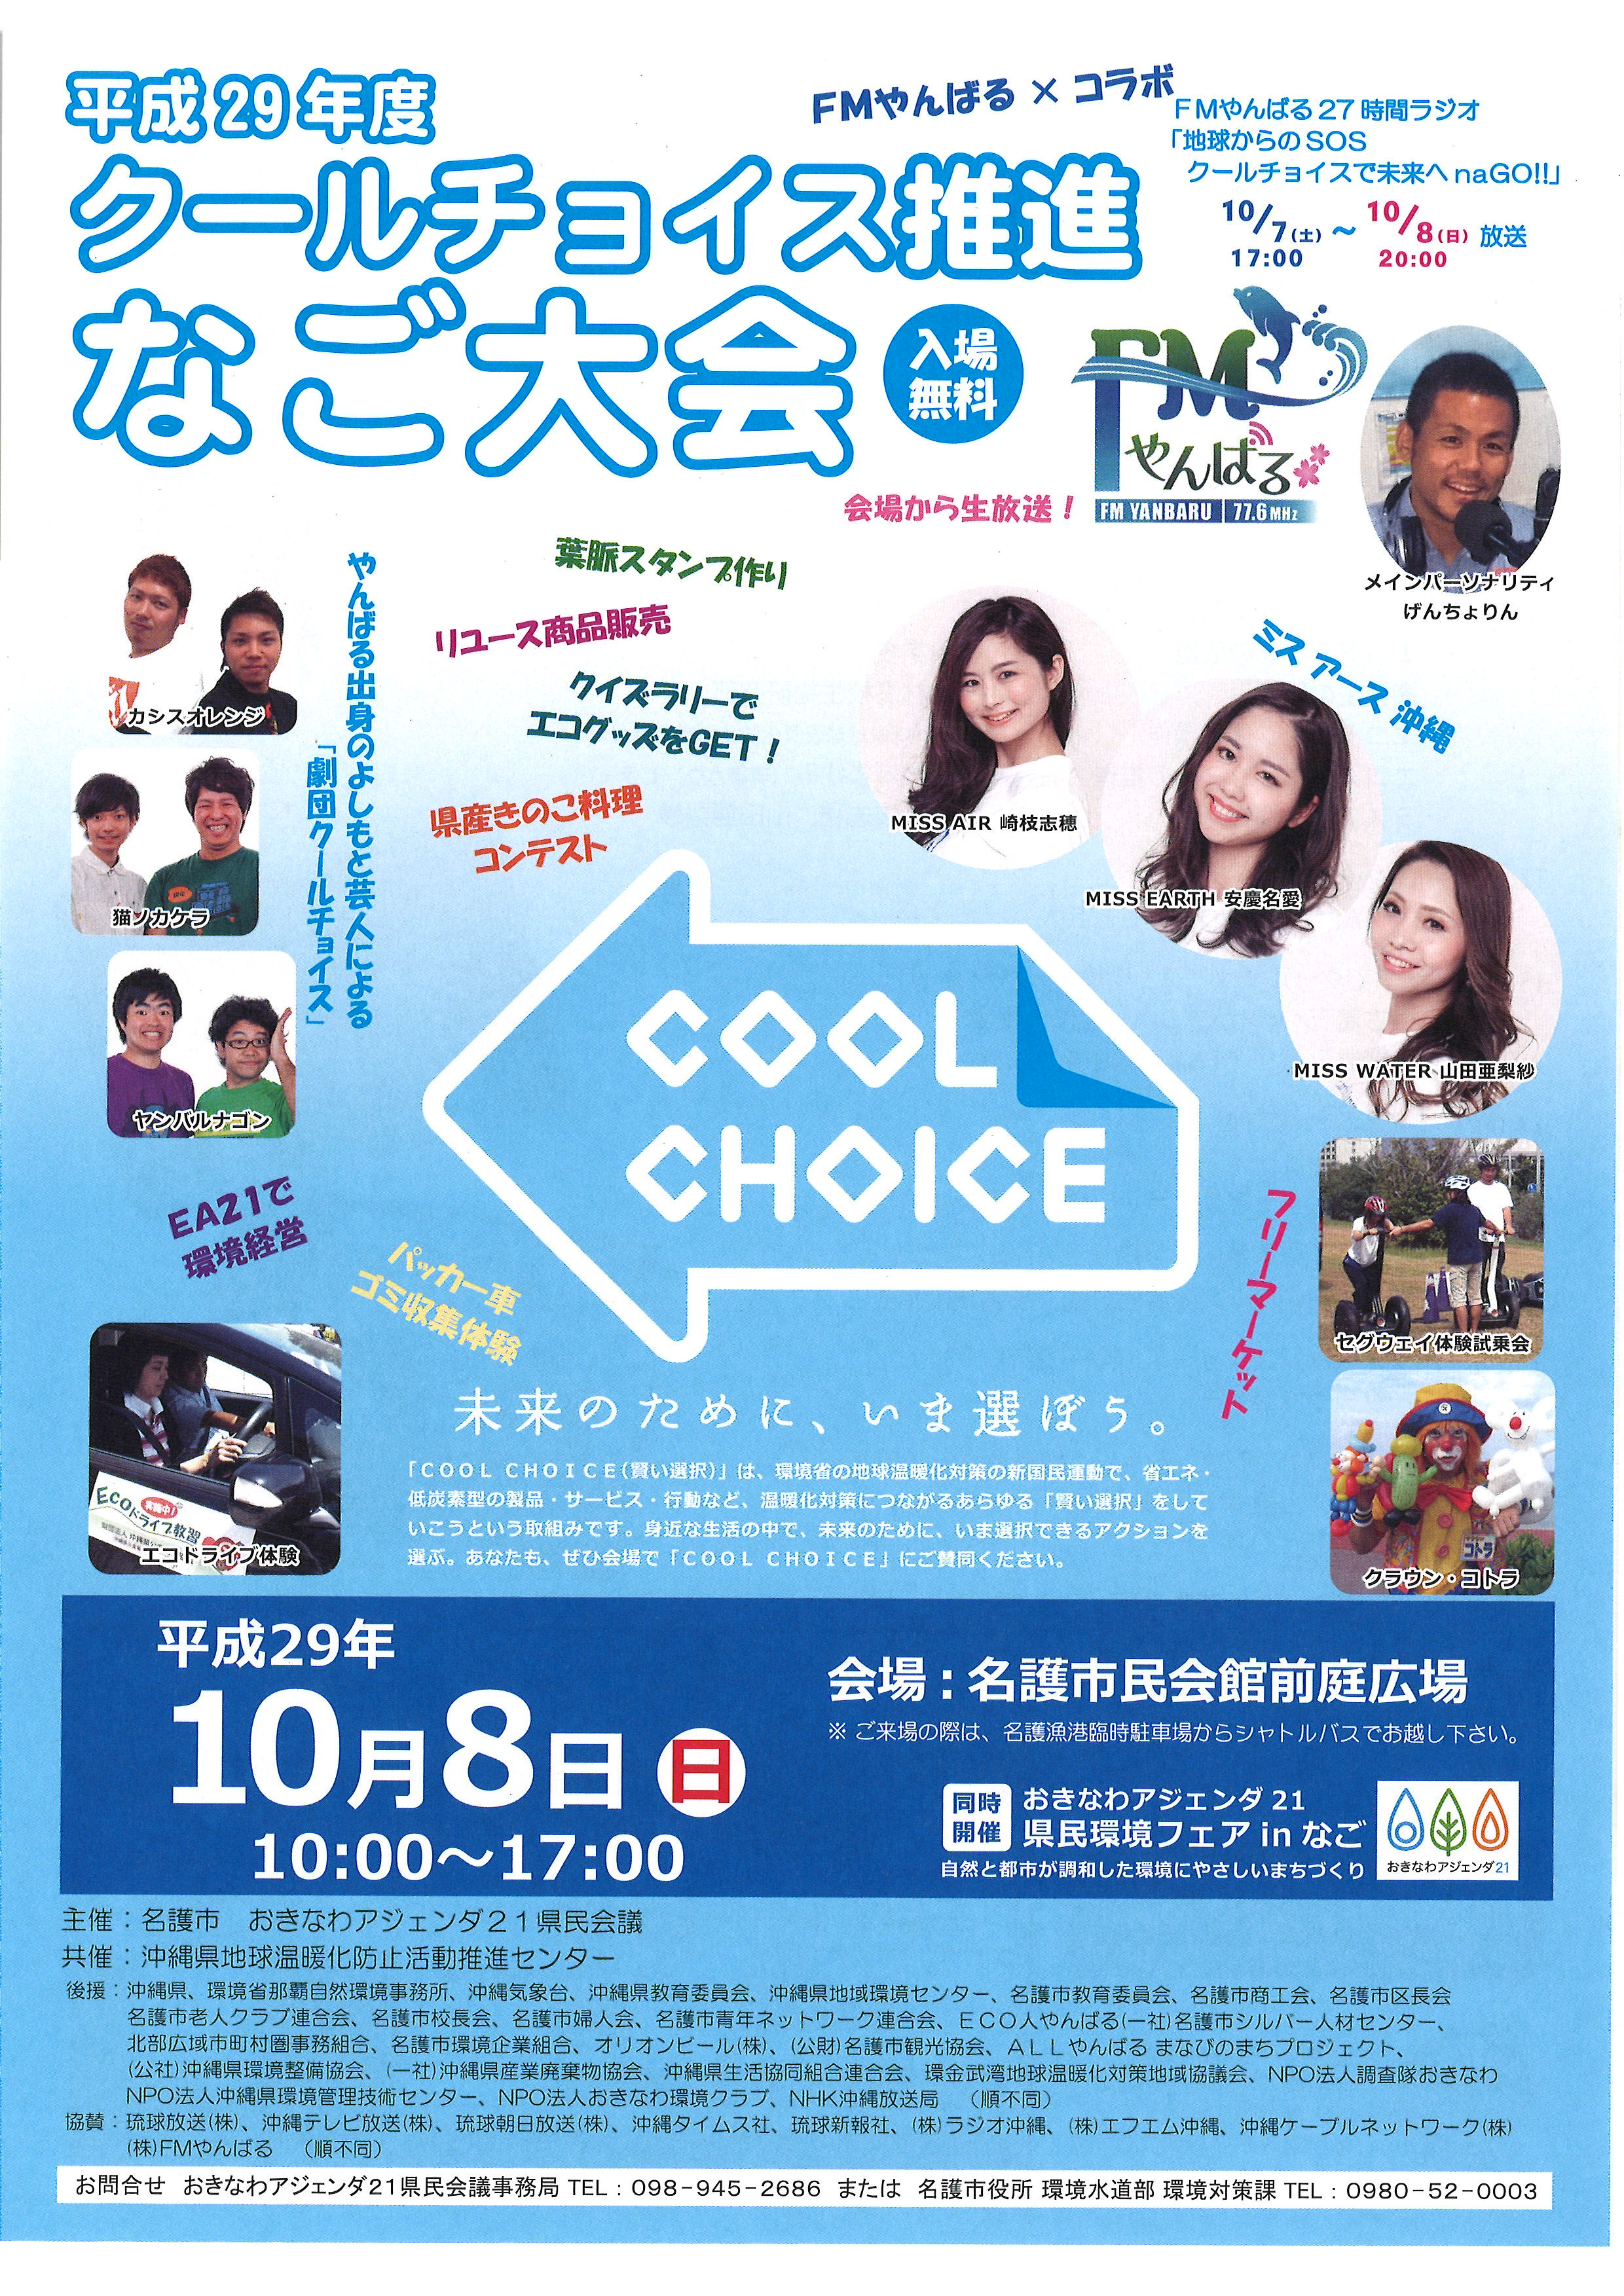 COOL-CHOICE-IN-NAGO-1